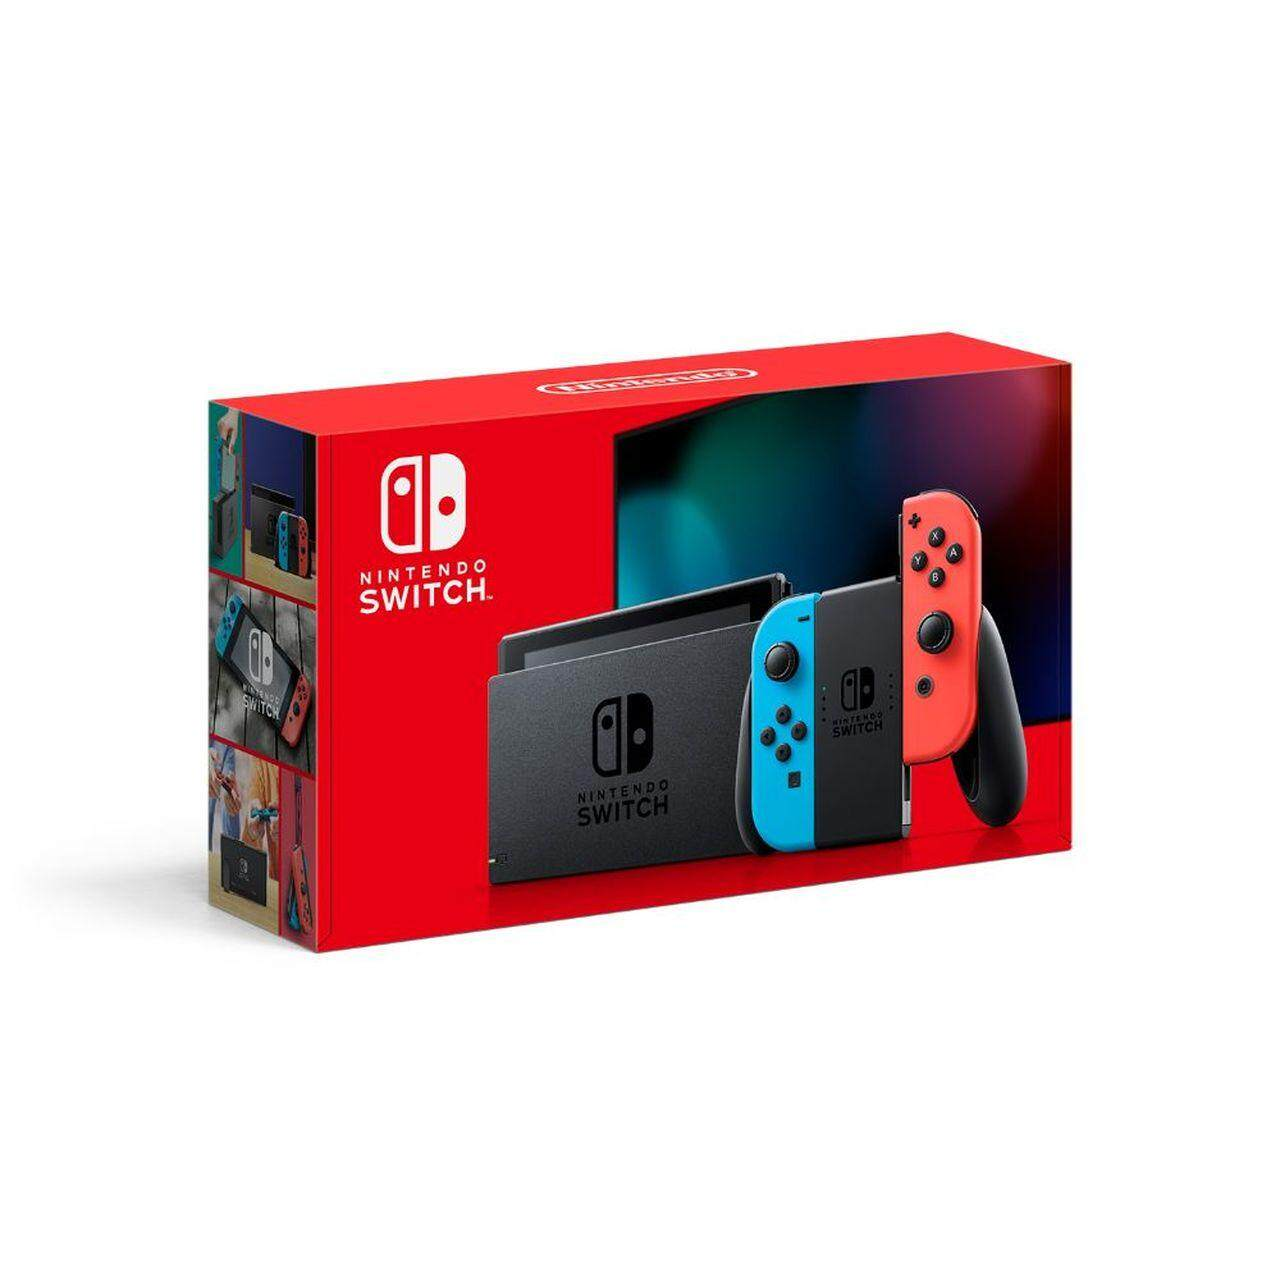 NINTENDO SWITCH CONSOLE (NEON BLUE/RED) JAPAN SET 1 YEAR LOCAL SUPPLIER  WARRANTY - PROMOTION PRICE !!